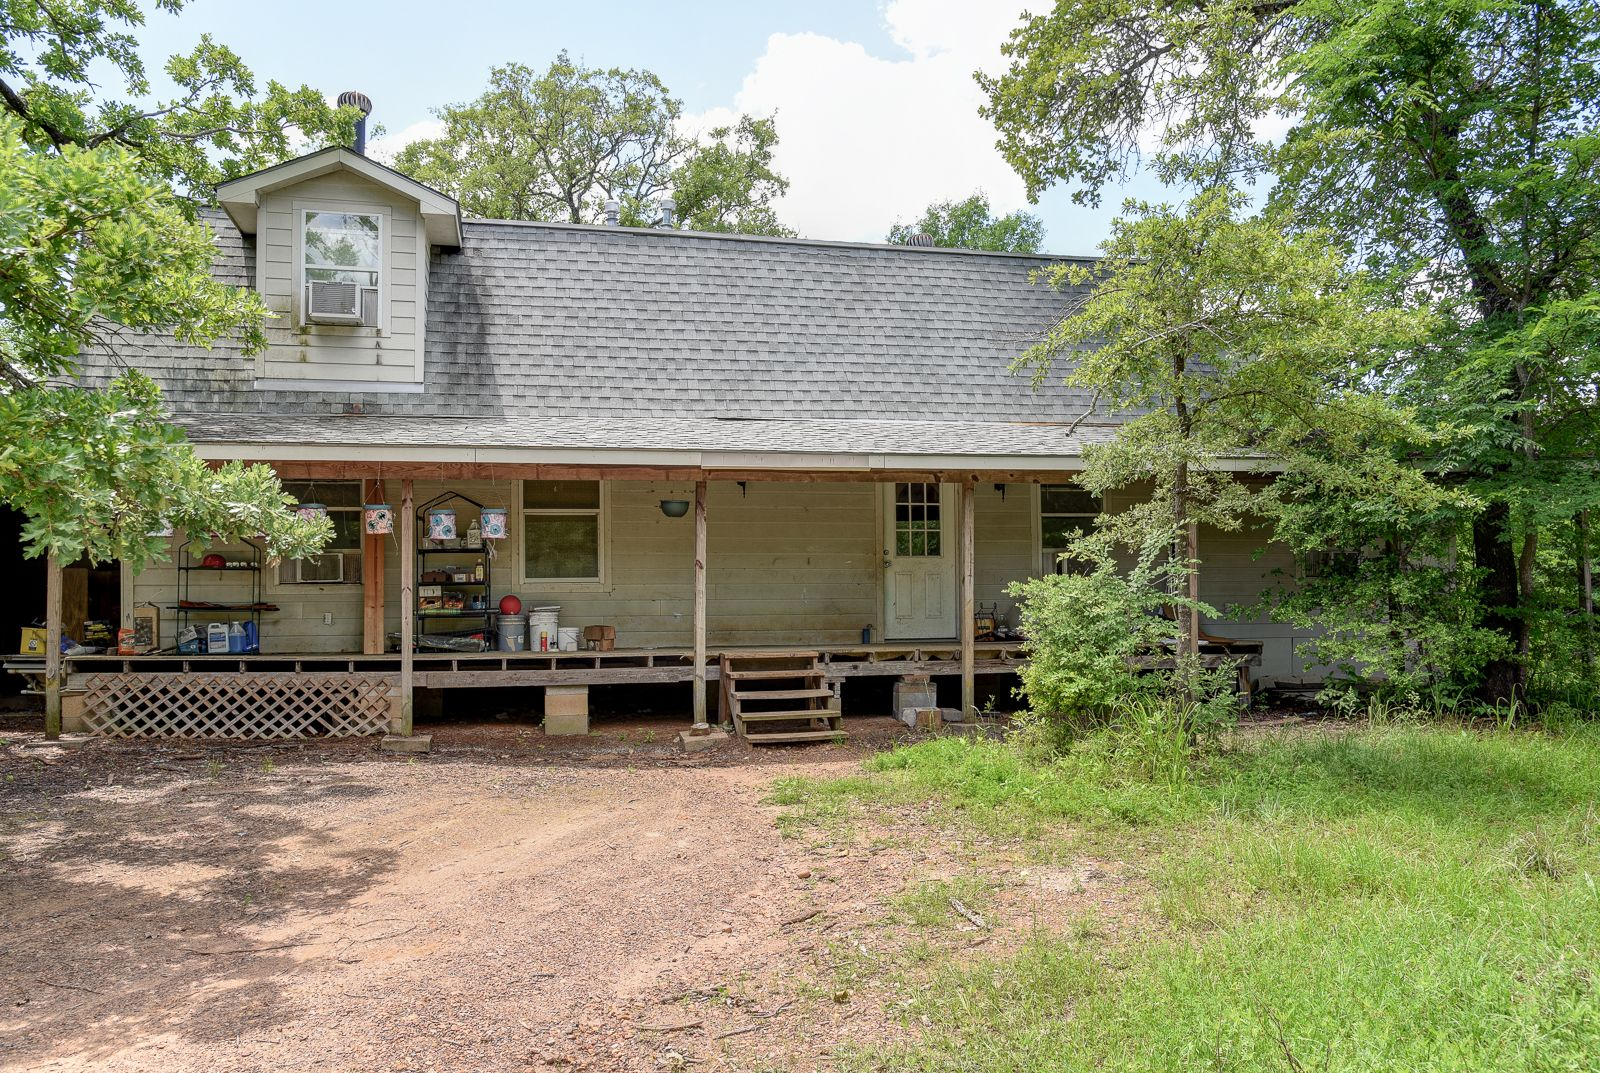 8949 Taylor Rd Bryan Tx 77808 20 Acres With Farmhouse 3 Bedrooms 2 Baths Mls Bryan Area Homes Real Real Estate Houses Farmhouse Remodel Real Estate